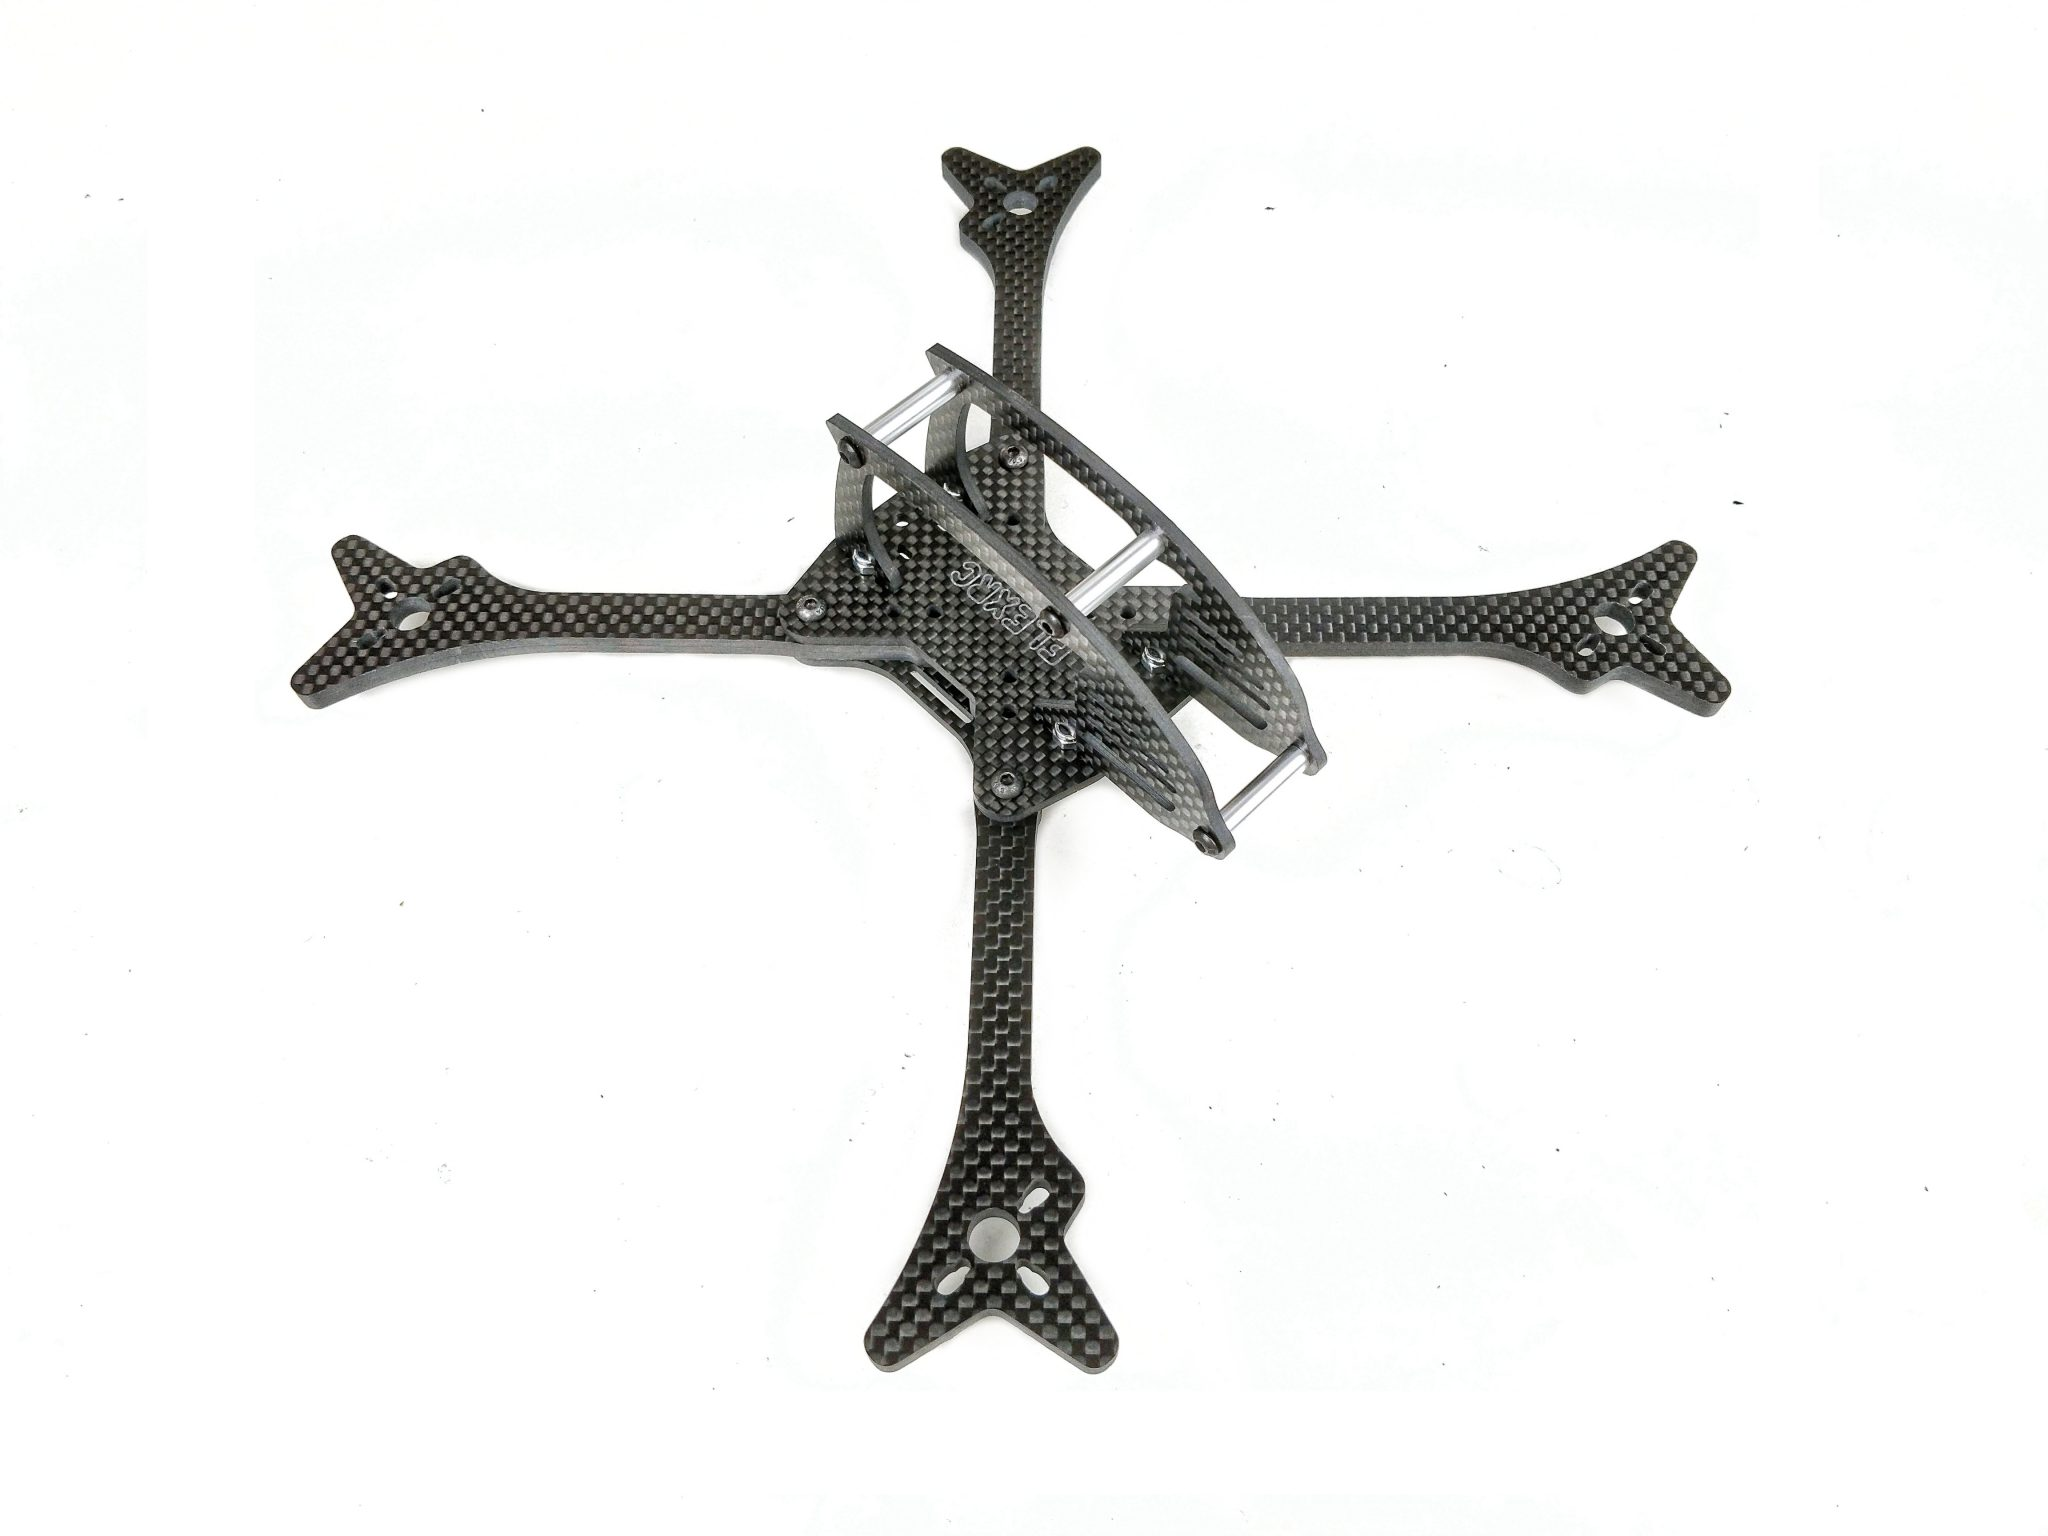 Ascent X 5 Fpv Racing Drone Frame Flex Rc